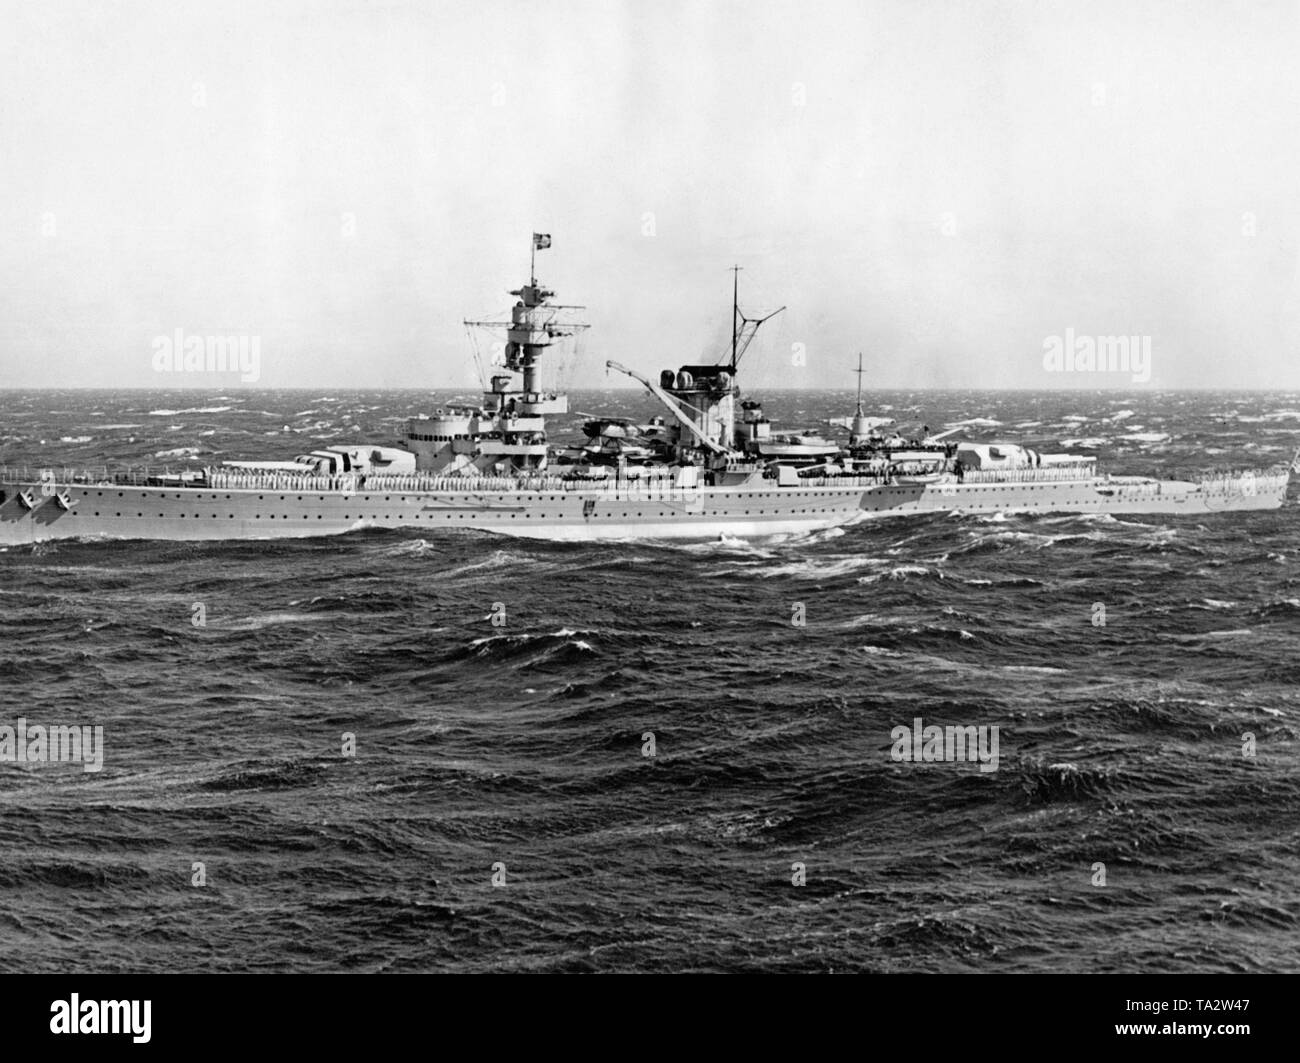 Photoof theheavy cruiser'Deutschland' in astormy sea taken by a photographer of the fleet of theNazi organization 'Kraft durch Freude' ('Strength through Joy') during a KdF trip off theItalian coast on the 7th of November, 1937. The crewhas lined upon the deck. At thebow and at therear therearetwo turretswith six 28 cmquick-fire guns. In the middle, one of the twoshipaircrafts of the typeArado Ar 196. - Stock Image